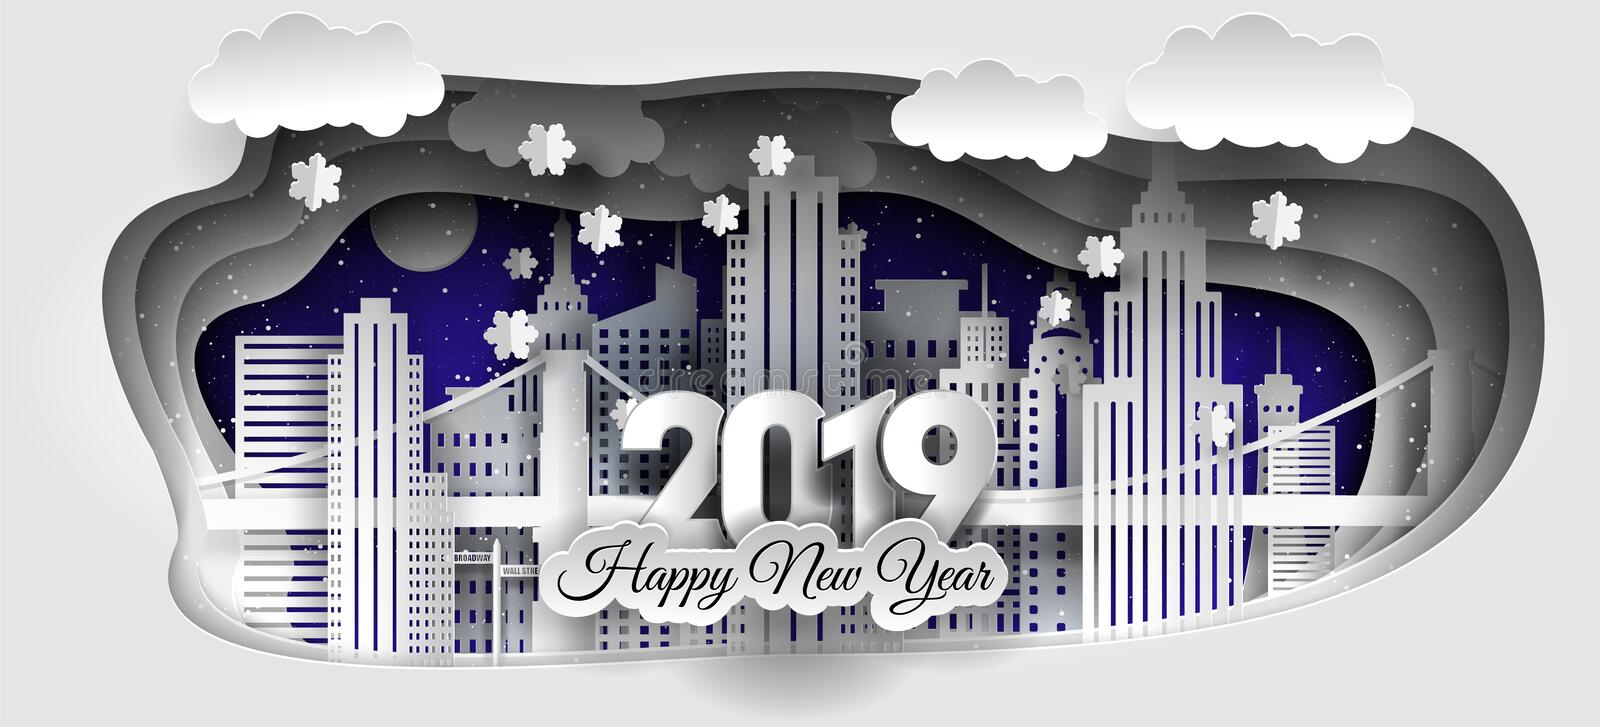 Creative Happy Merry Christmas and New Year 2018/2019 design. Winter city stock illustration